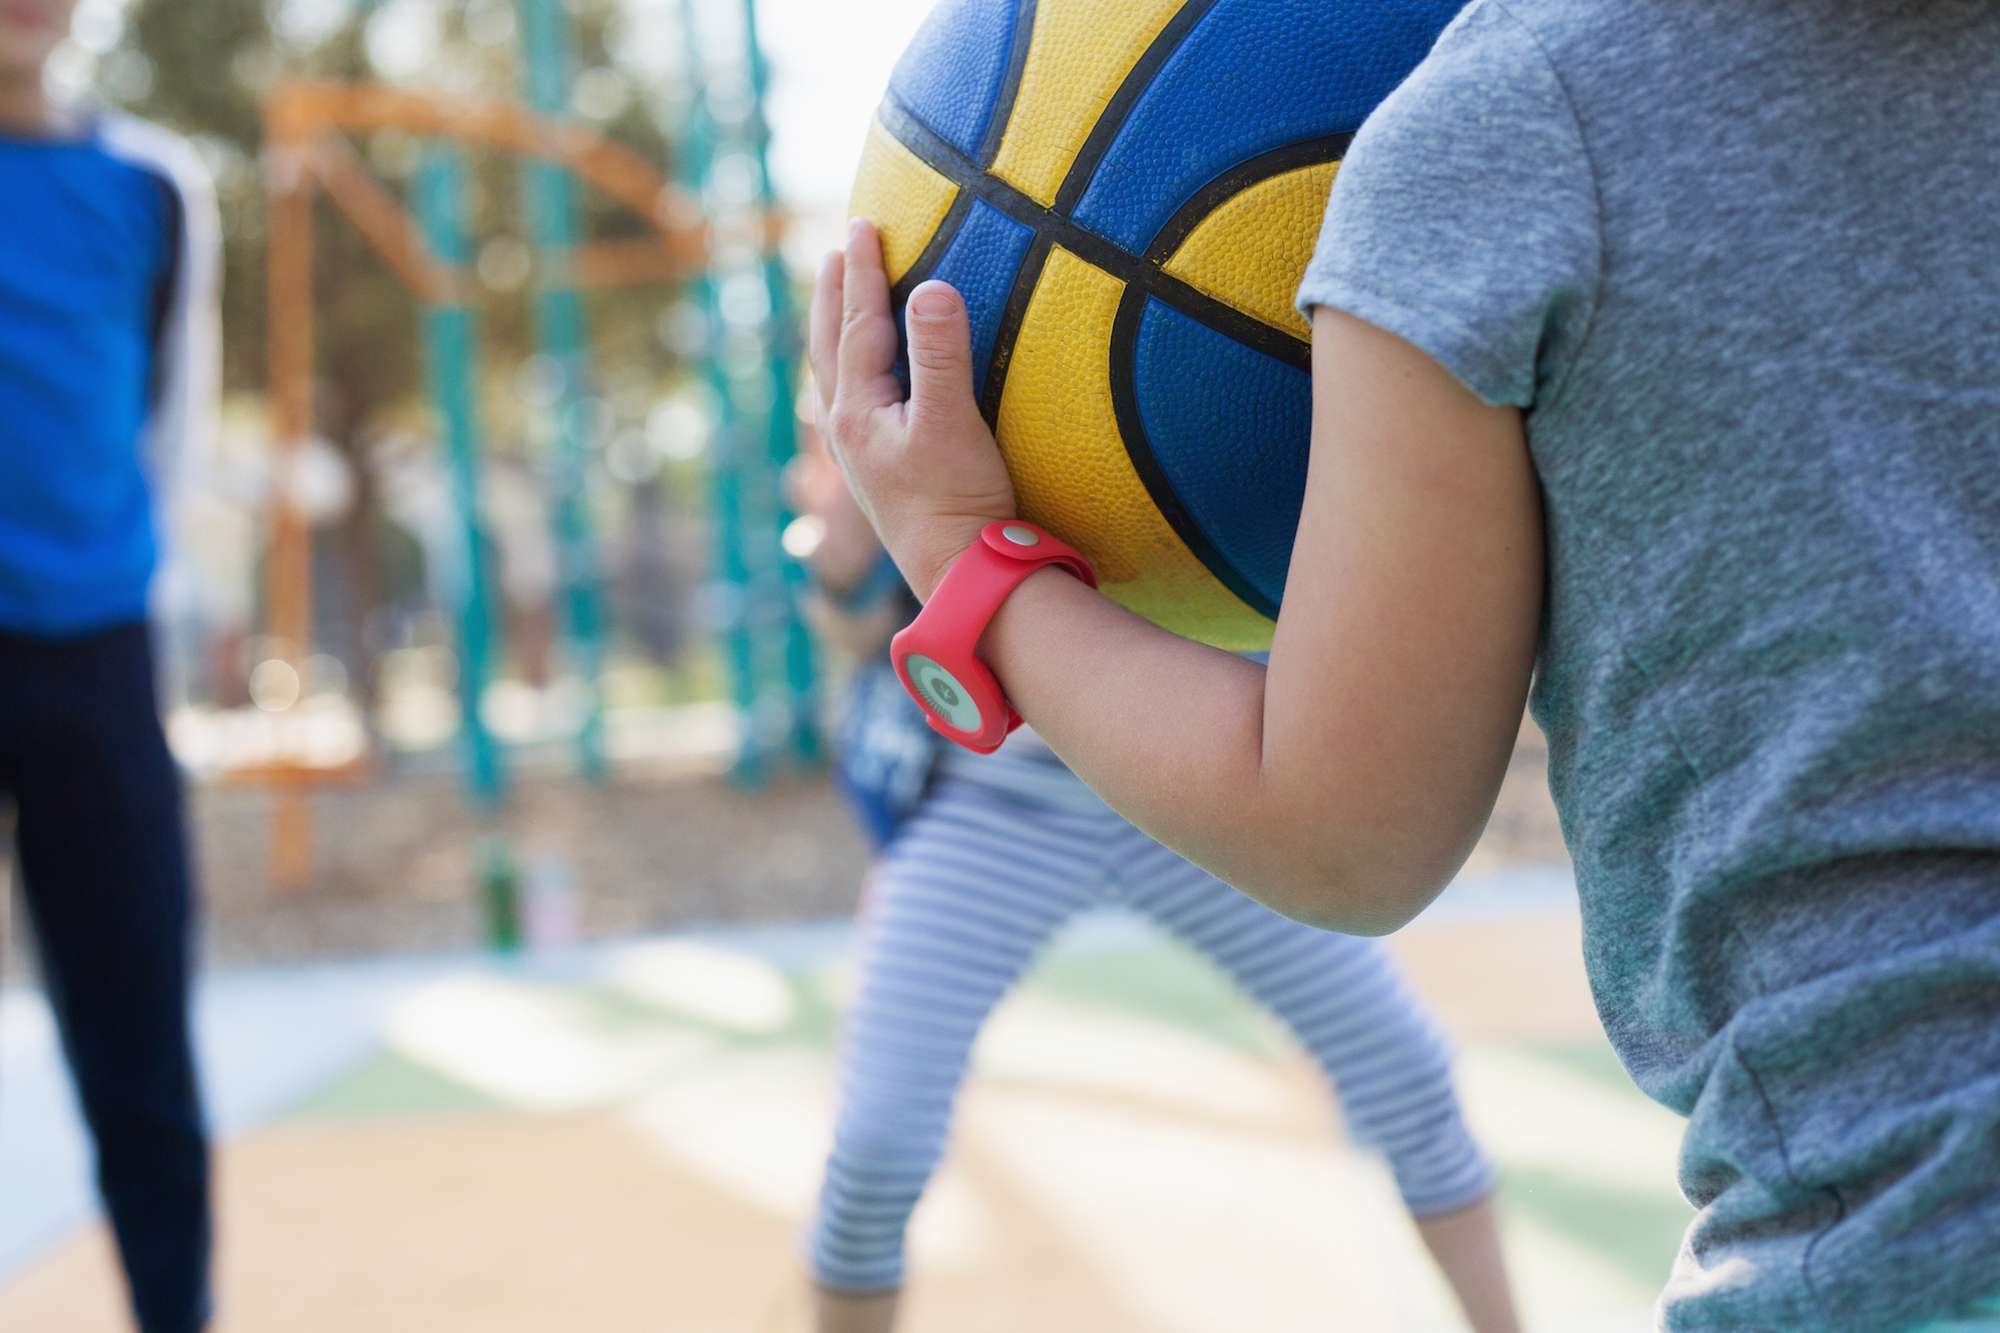 Child with fitness tracker